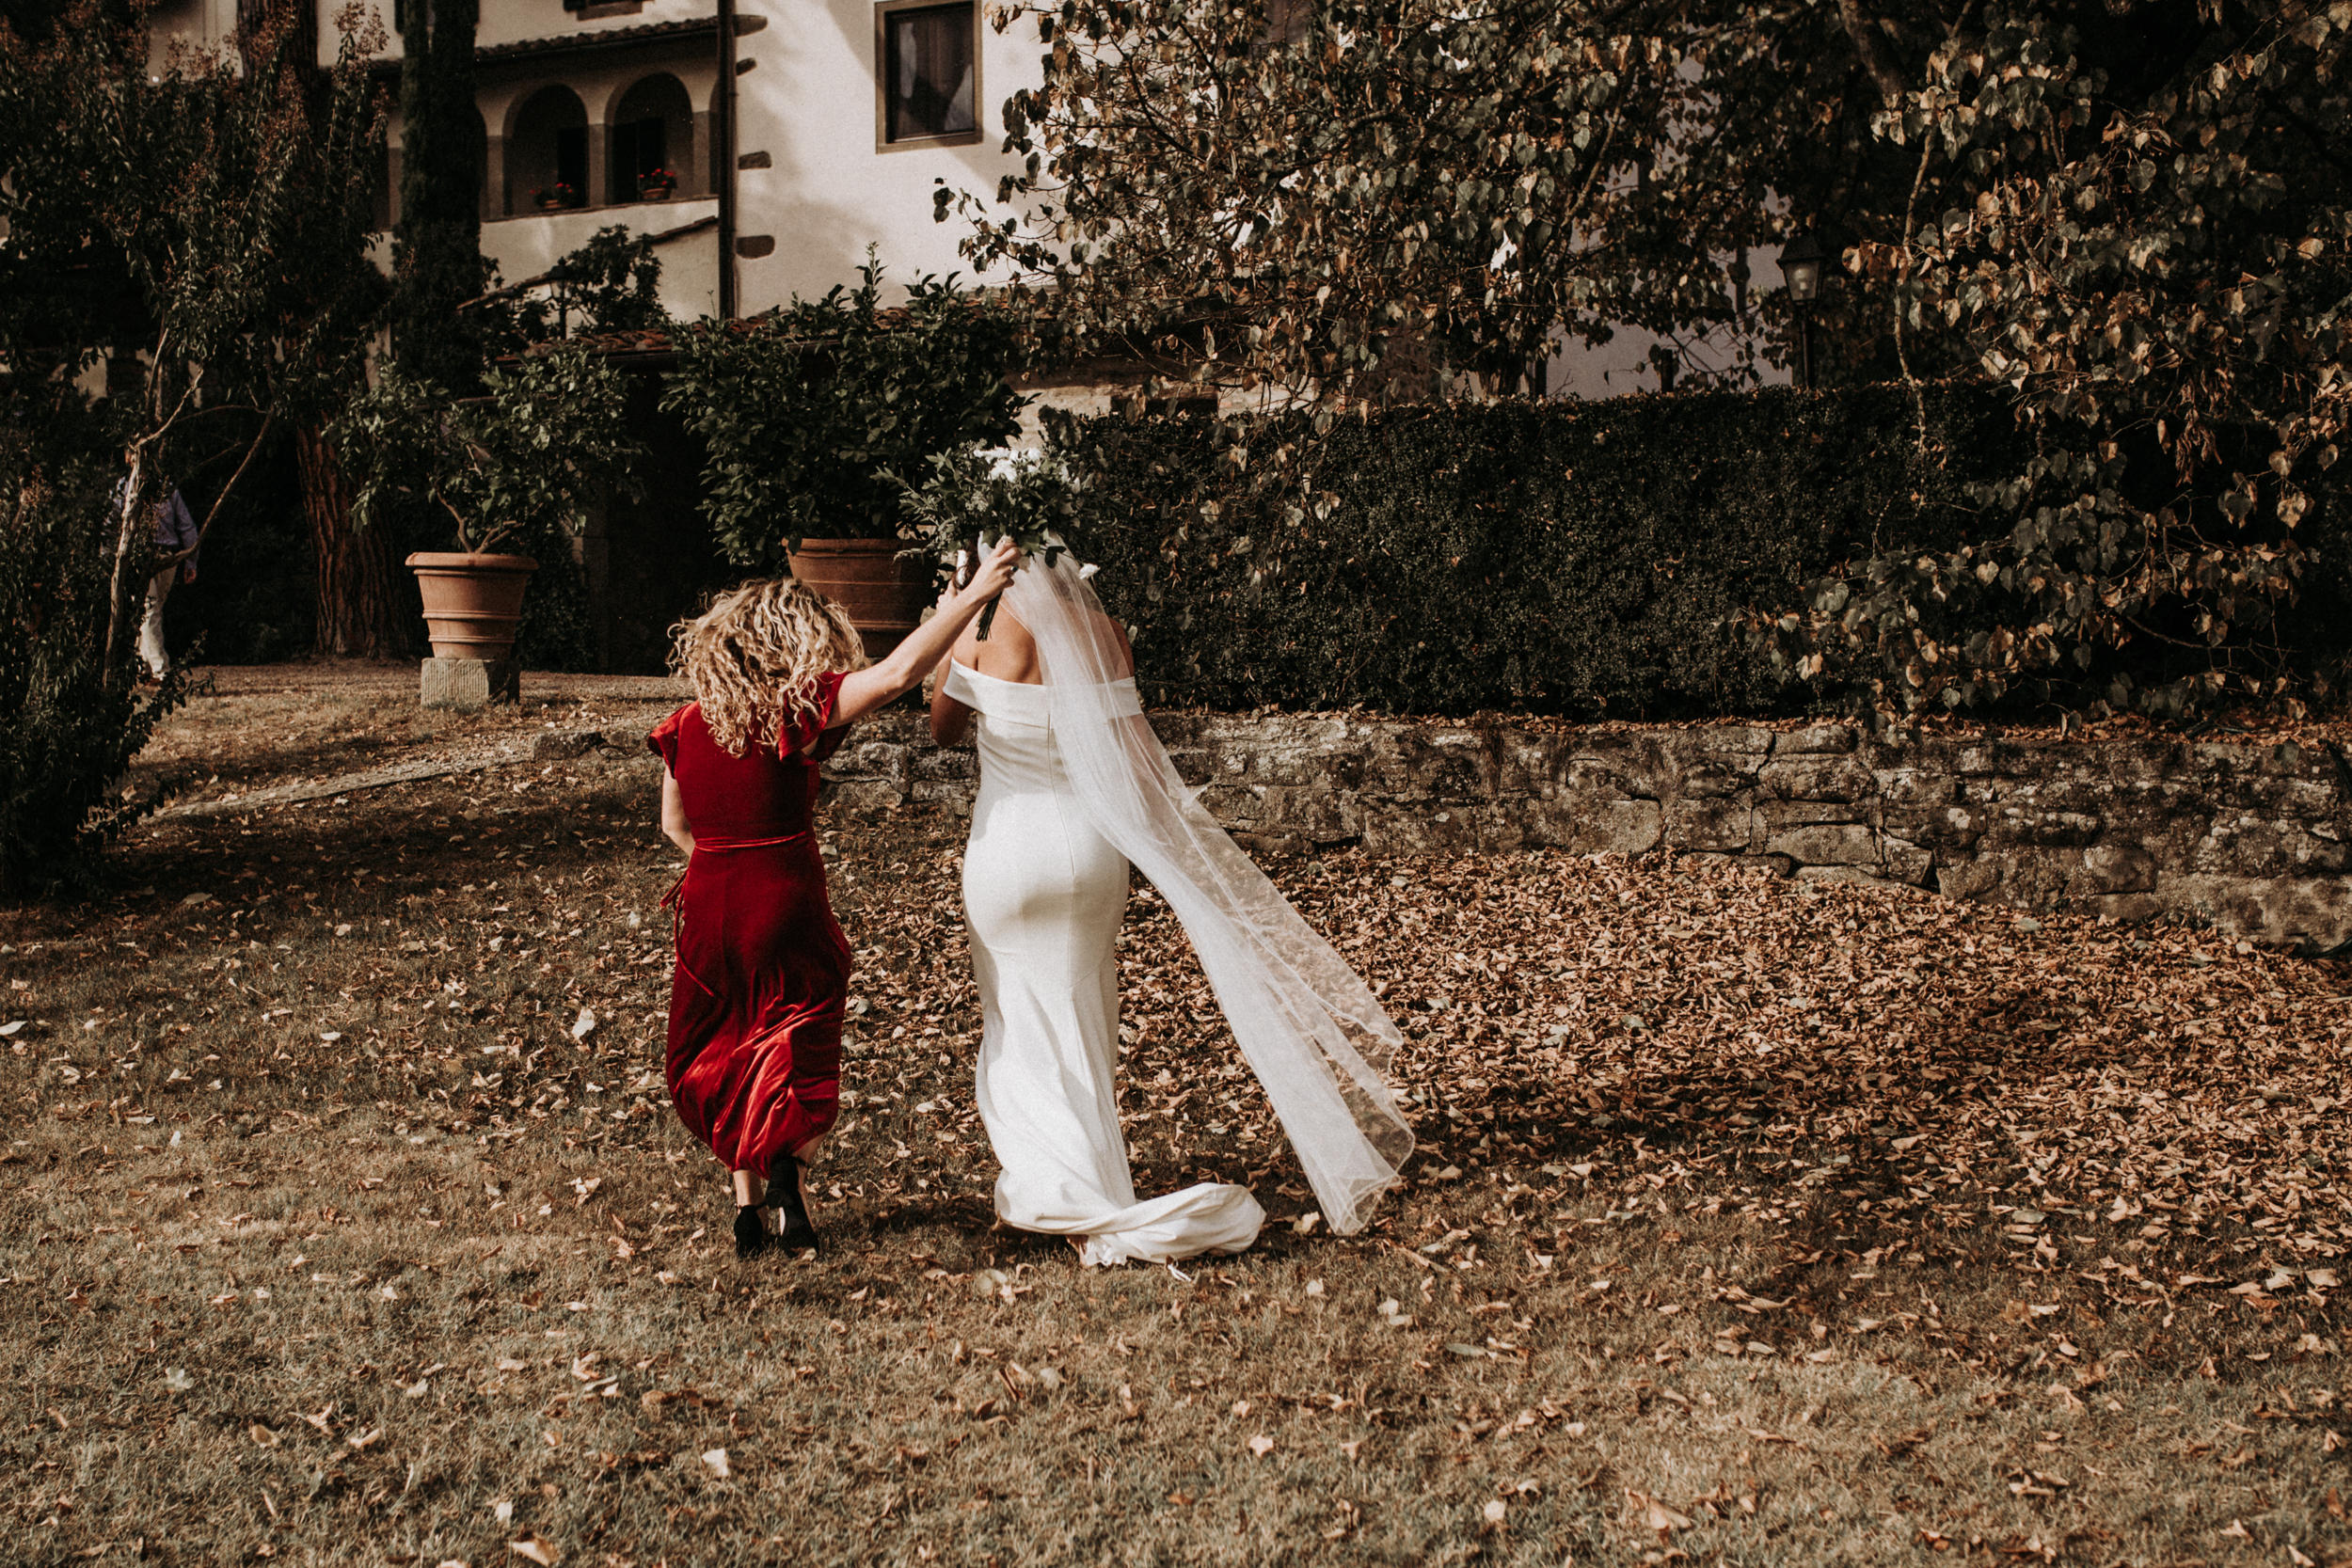 dm_photography_KW_Tuscanyweddingday_264